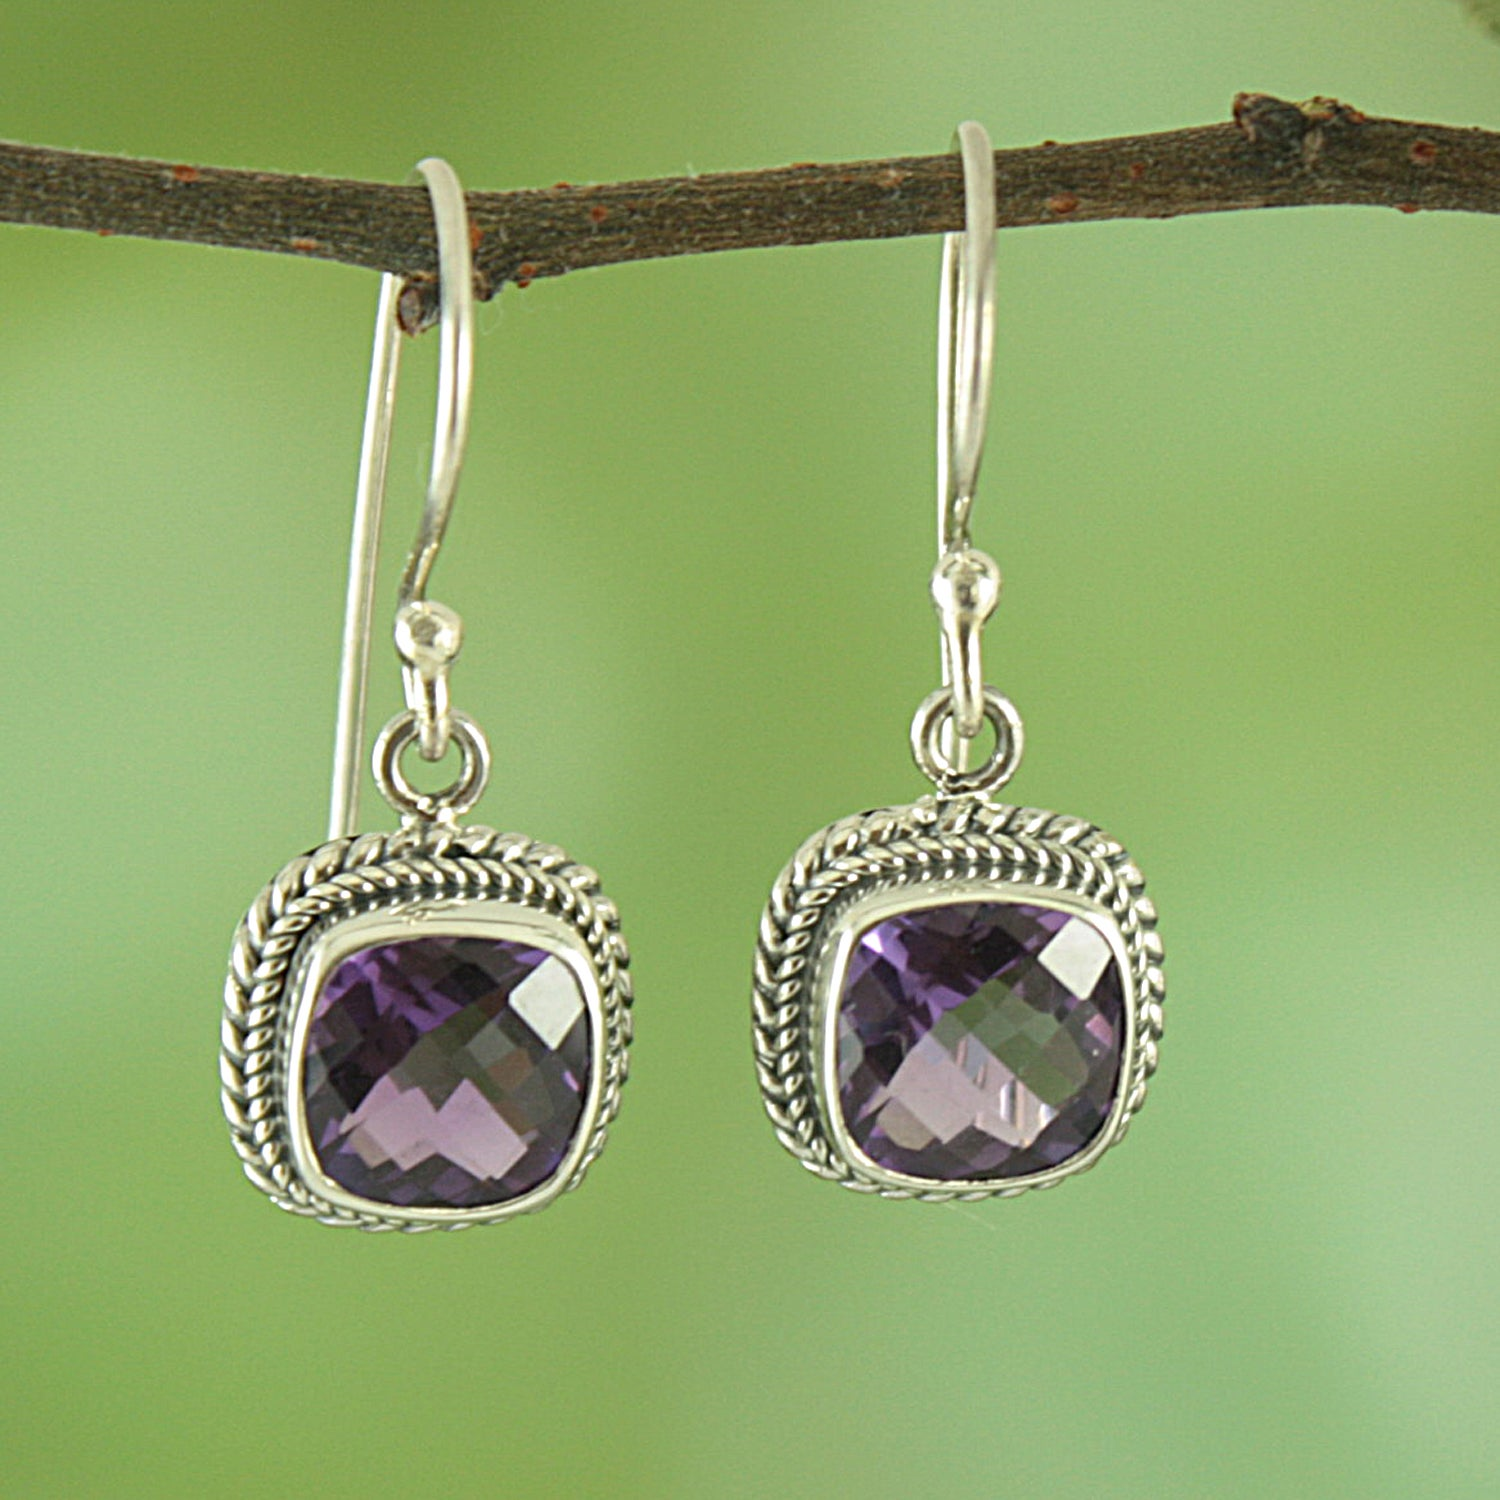 Sterling Silver/ Amethyst Square Rope Edge Dangle Earrings (Indonesia)